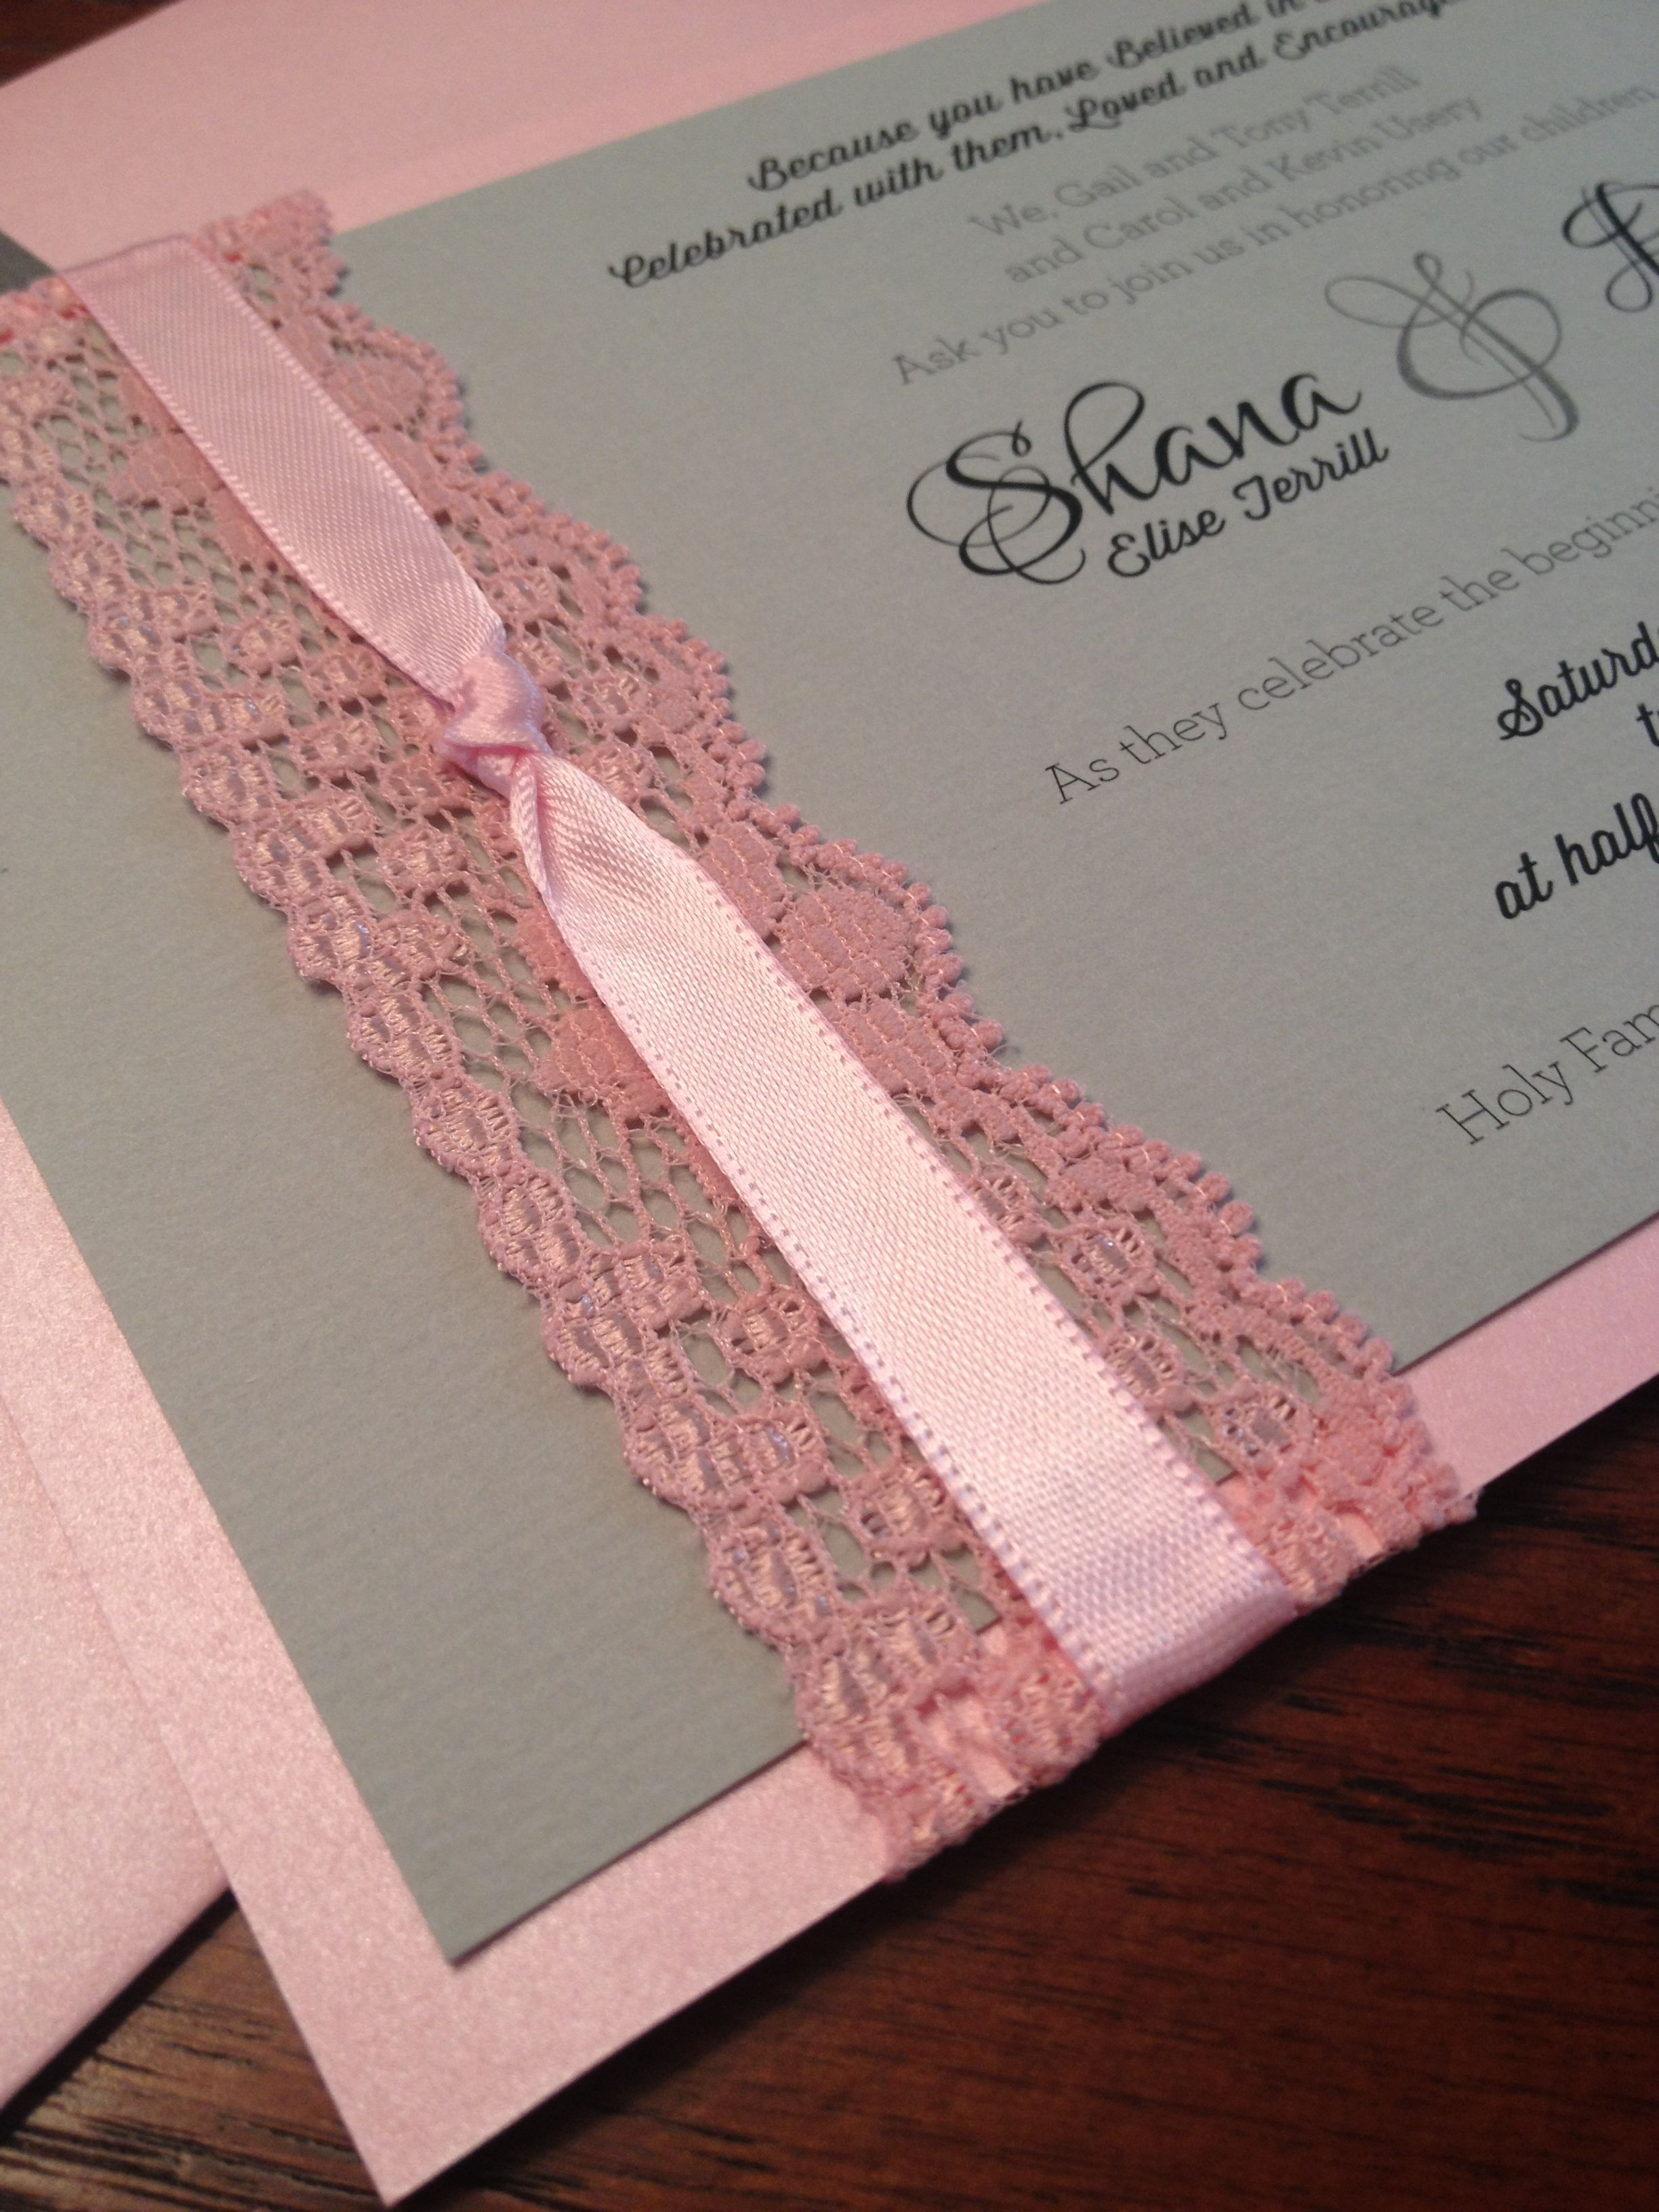 tie the knot wedding invitations etsy%0A Pink and grey lace wedding invitations